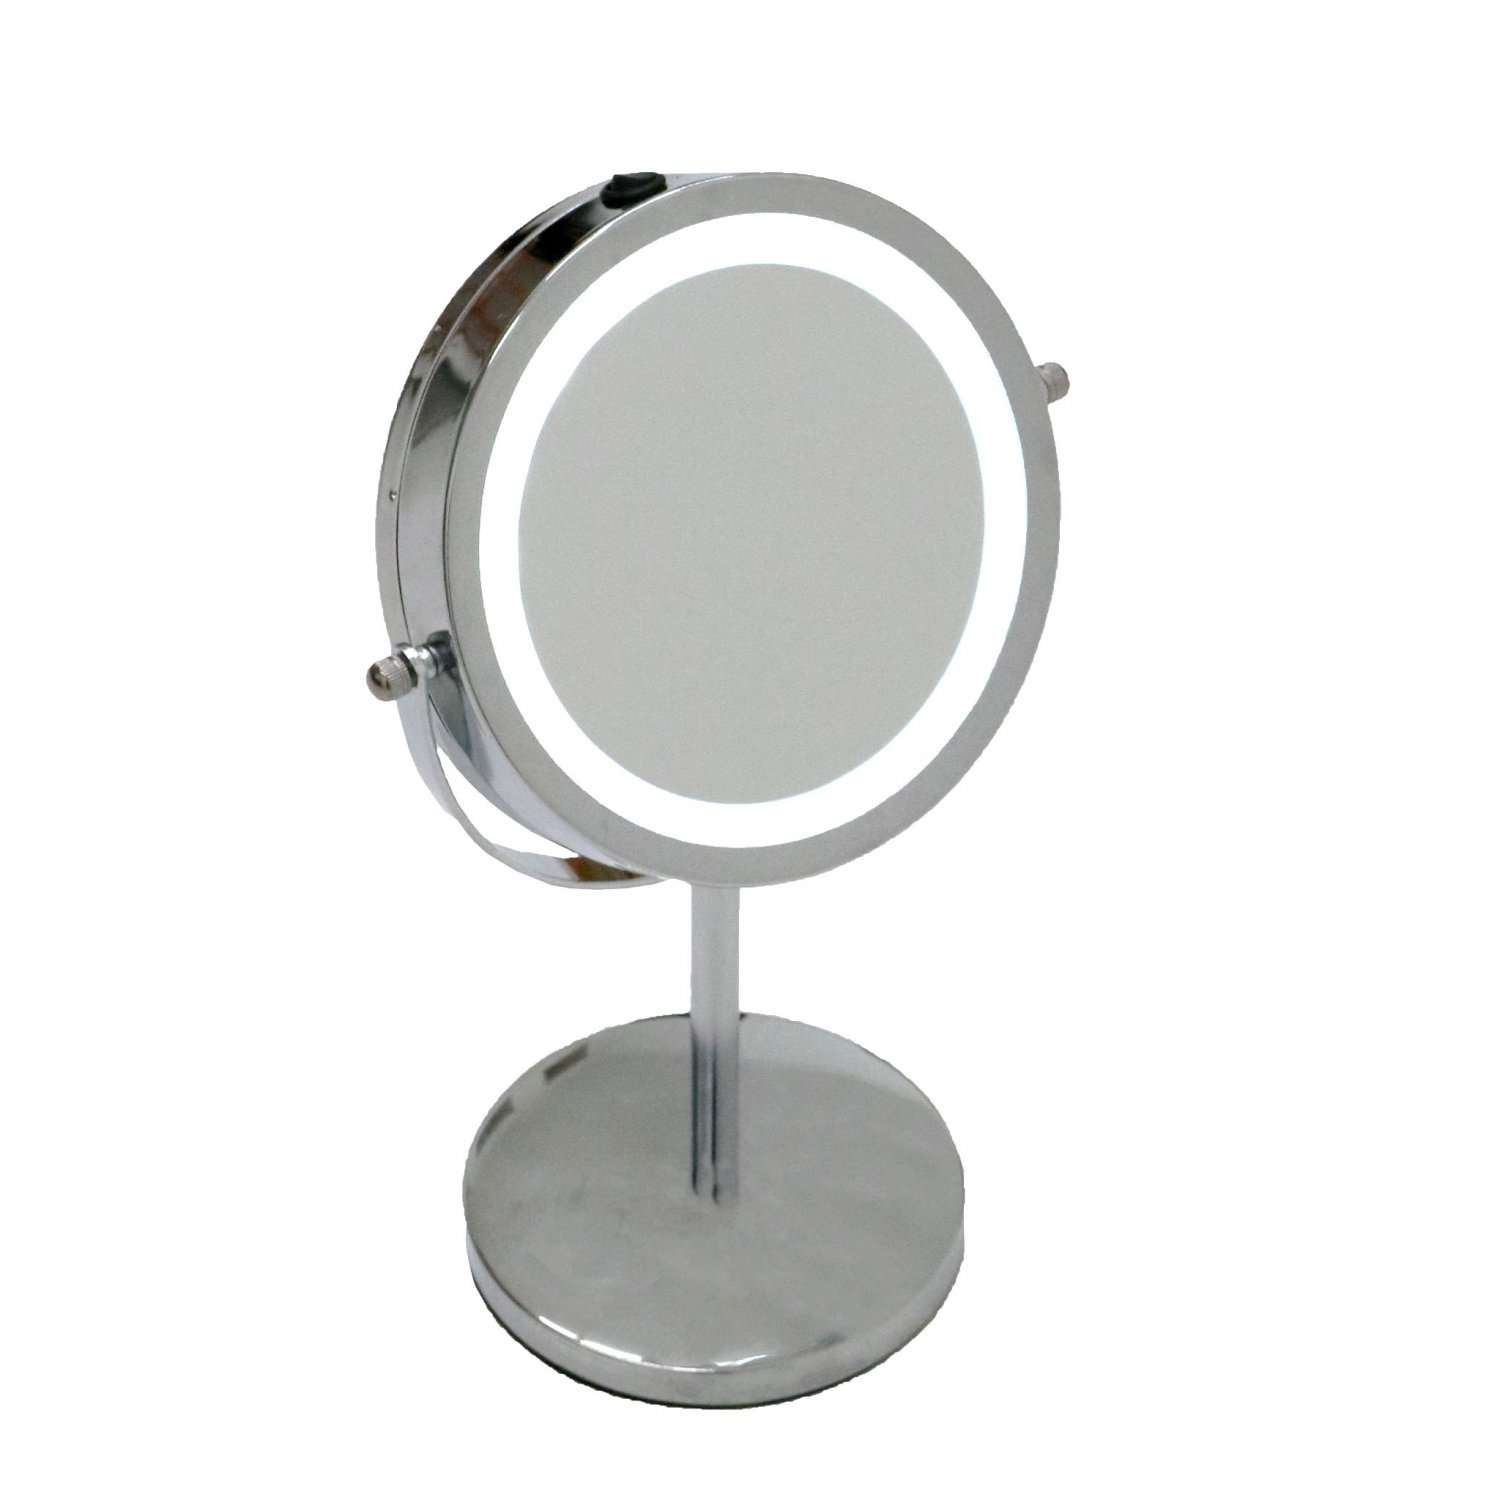 New 22w Floor Standing Magnifier Glass Philips Lamp With